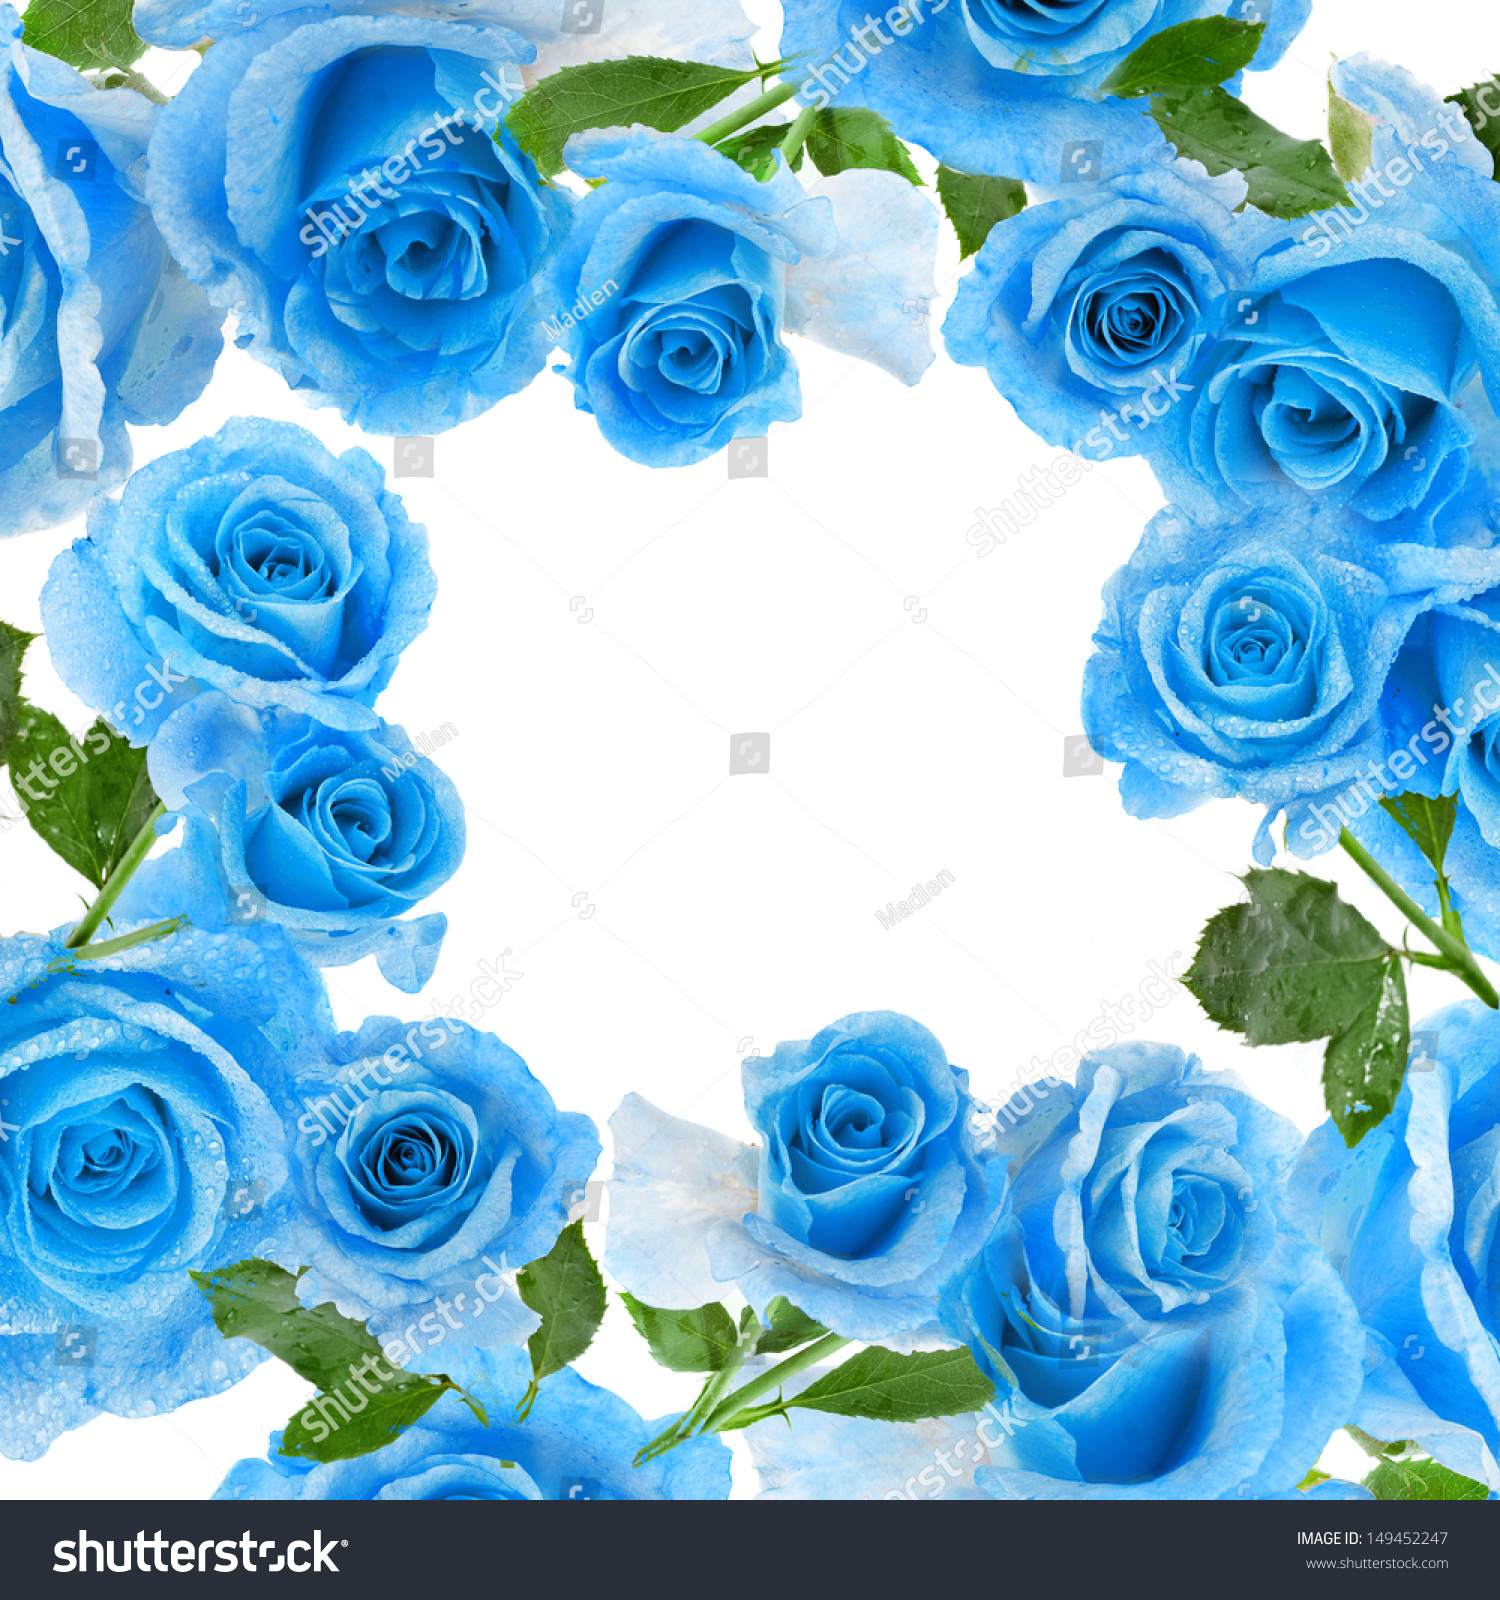 Frame Border Beautiful Blue Rose Water Stock Photo ...